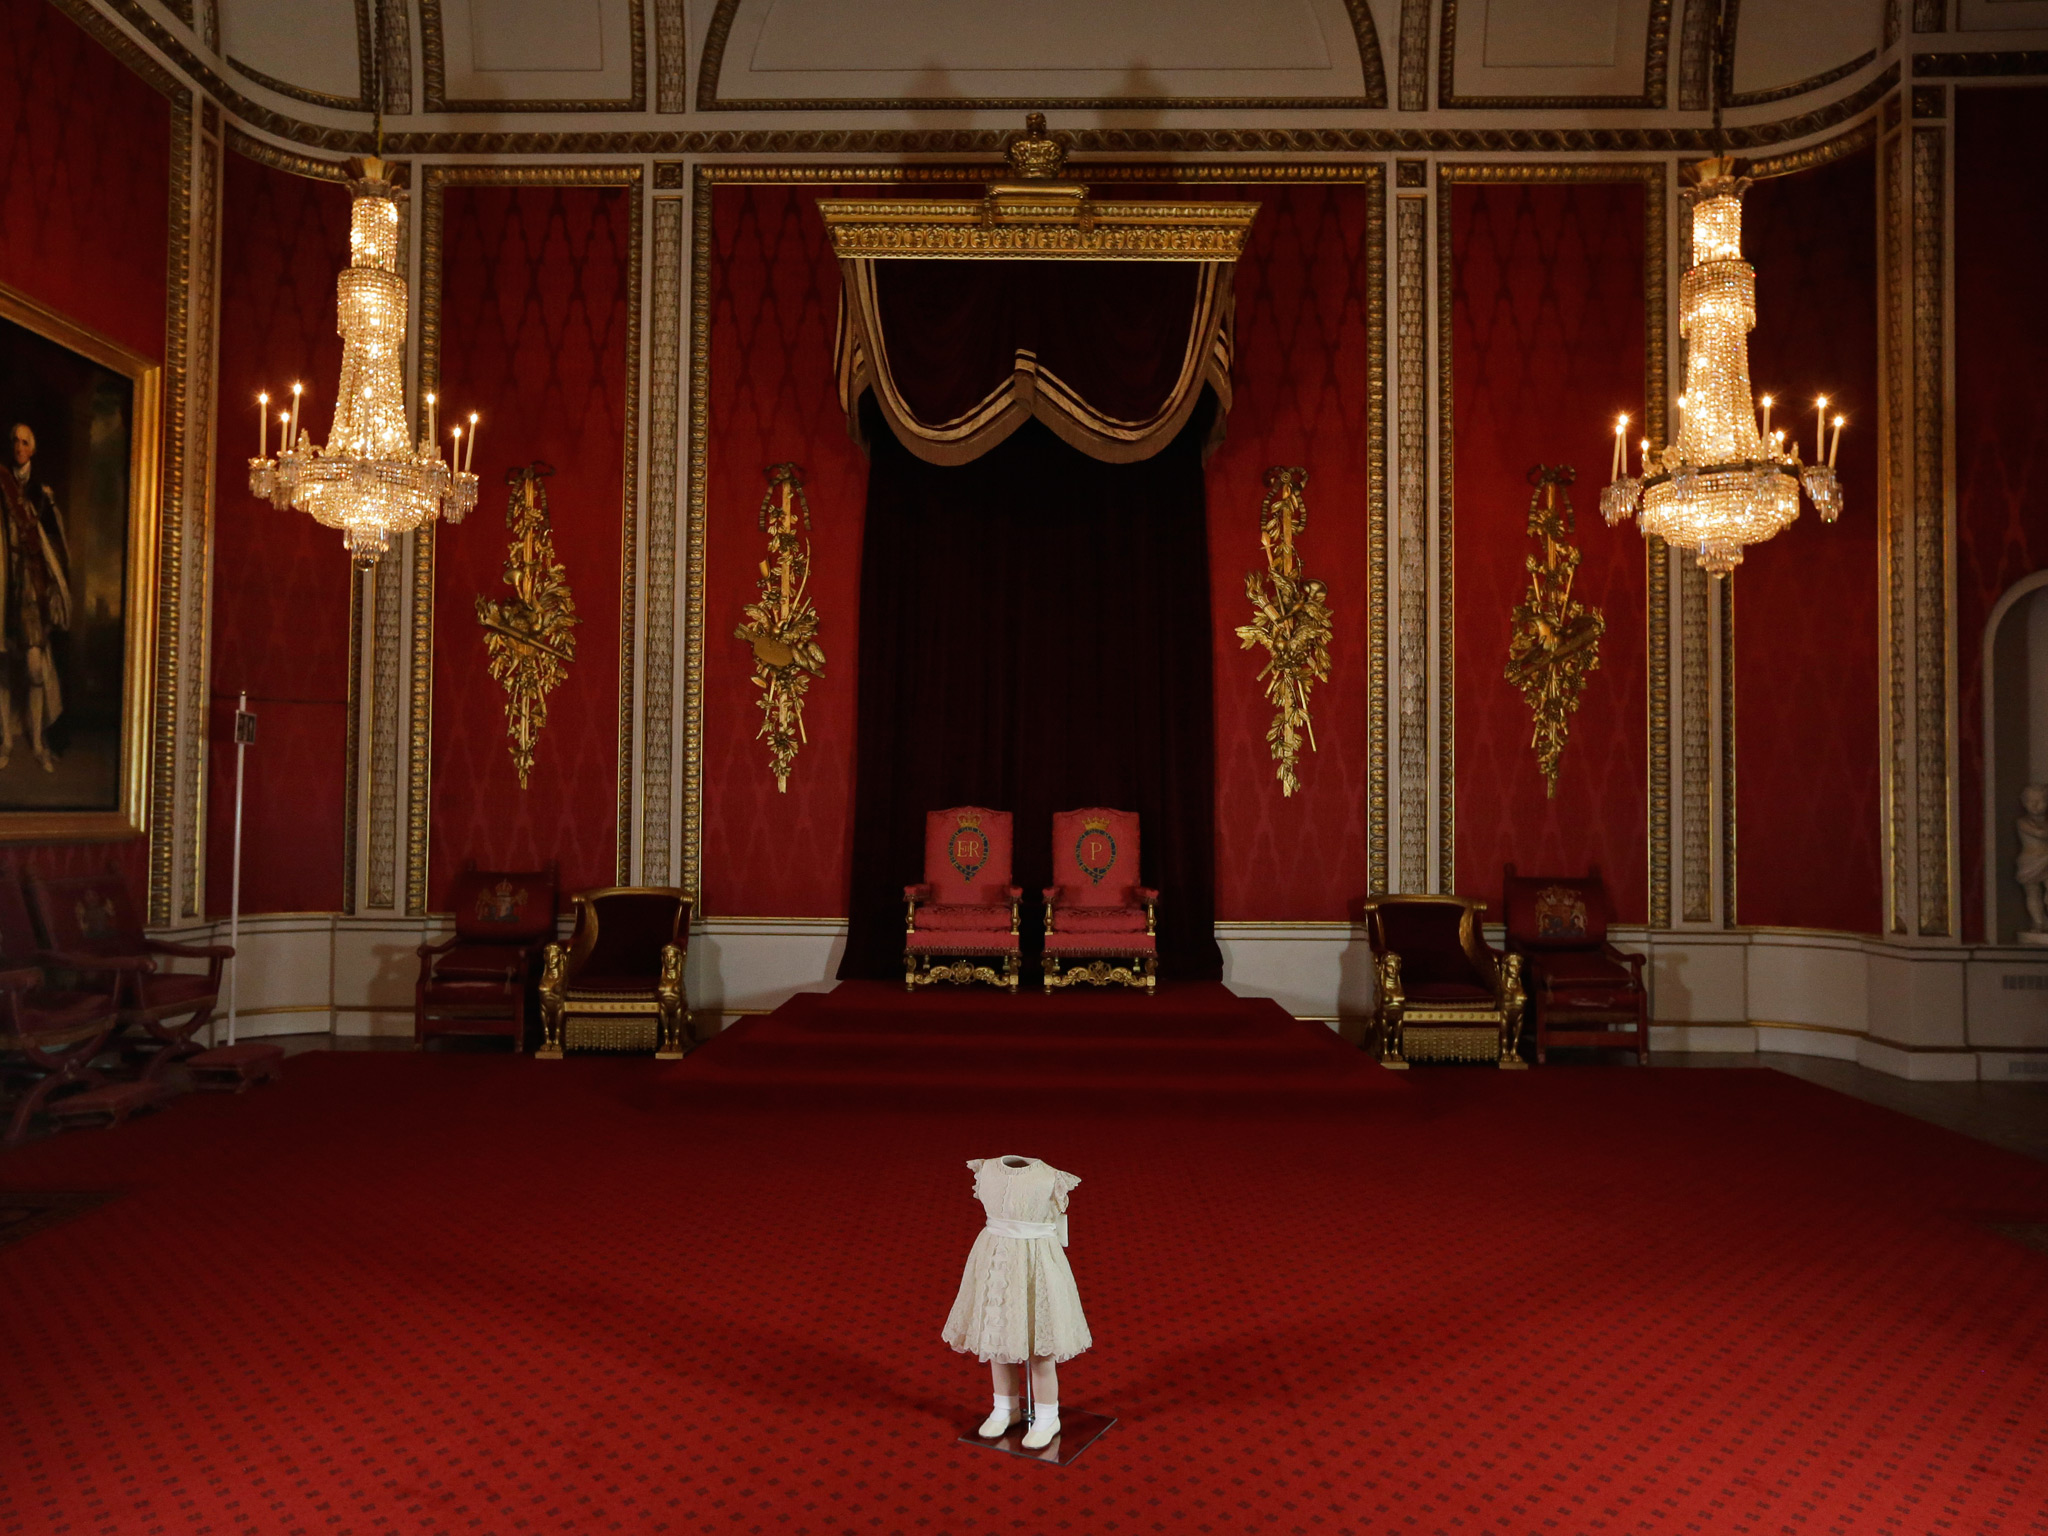 Royal Throne Room Buckingham Palace Images